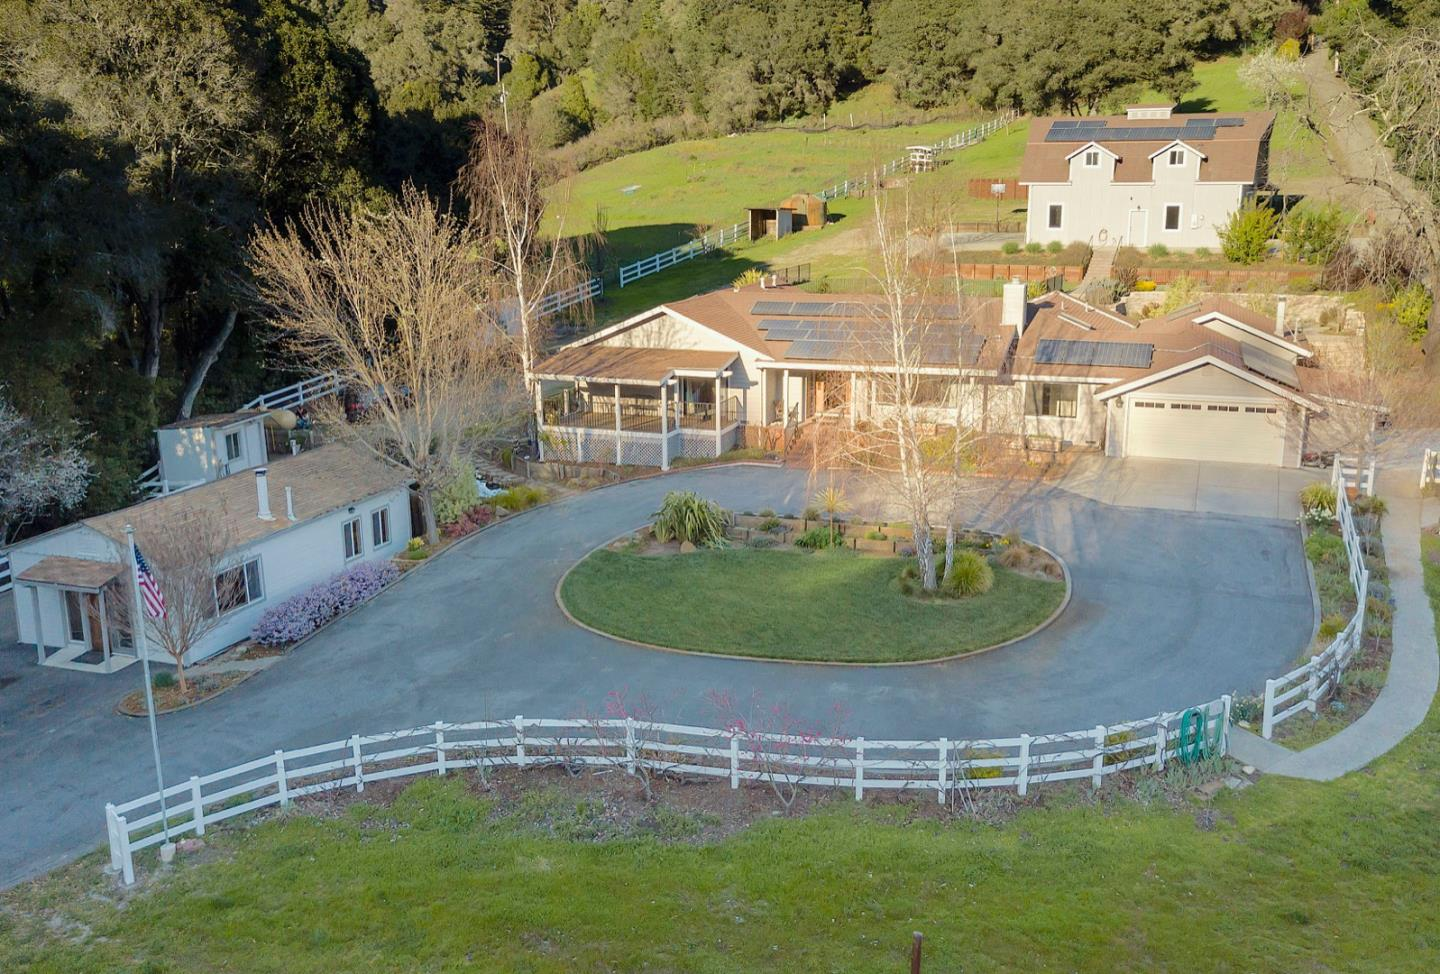 This ranch estate property is one of a kind among the sun soaked hills of Soquel.  More than 3 acres includes upper and lower pastures, gardens, more than 2 dozen fruit trees, an incredible 2-story finished barn and workshop, fish pond, mature landscaping, a gorgeous hard-scaped backyard that is perfect for entertaining, a separate 1 bedroom cottage/granny unit, a strong dedicated well, and plenty of sunshine for all your ranching and agriculture needs.  The spacious and well-maintained single level ranch home has separate family and living rooms, two fireplaces, a dining room with lots of natural light from the expansive wrap-around windows that look out to the backyard, an office/bonus room, large master suite with private deck and walk-in closets, solar panels (owned), automatic generator...and so much more.  Just 8 minutes to downtown Soquel and 15 minutes to Highway 17 at Summit Rd, a great commuting location as well.  This legacy property is a must see!